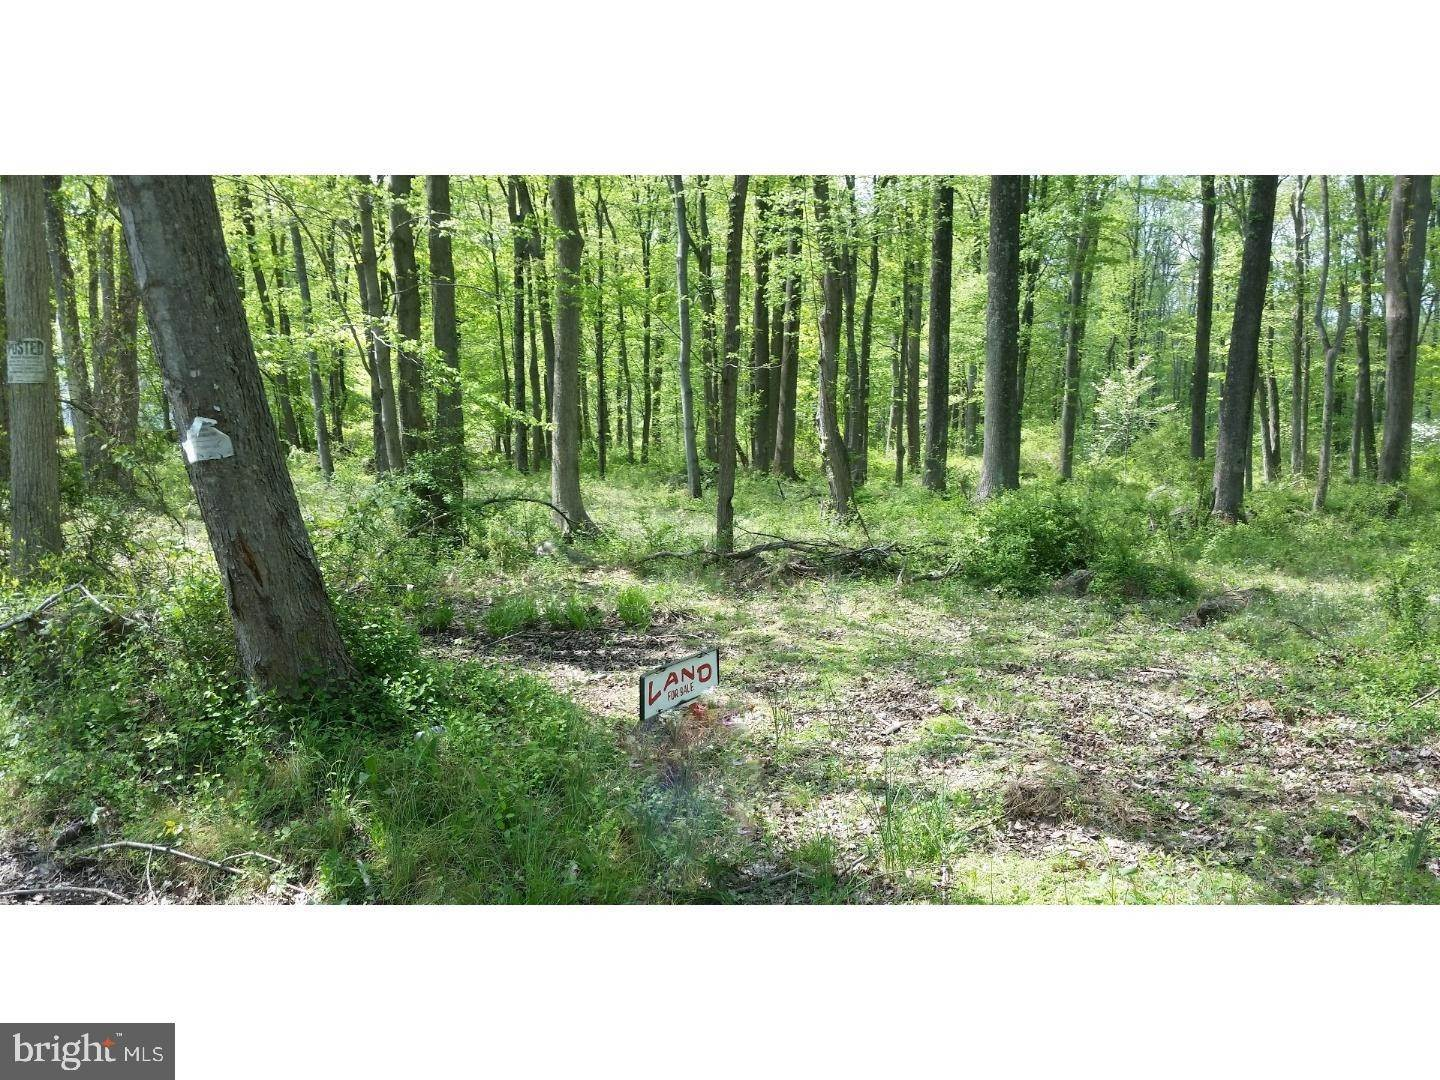 Land for Sale at 150 ROCK ROAD W Lambertville, New Jersey 08530 United States